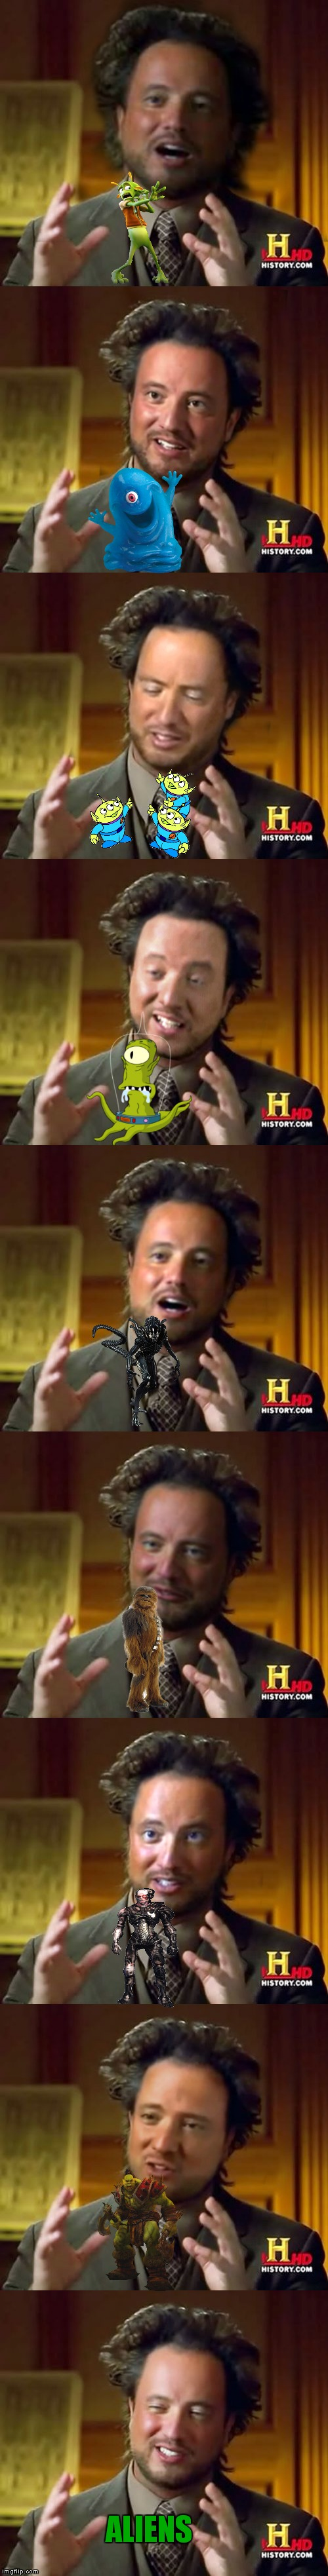 The many faces of Giorgio... | ALIENS | image tagged in giorgio tsoukalos,ancient aliens,memestrocity,jying | made w/ Imgflip meme maker